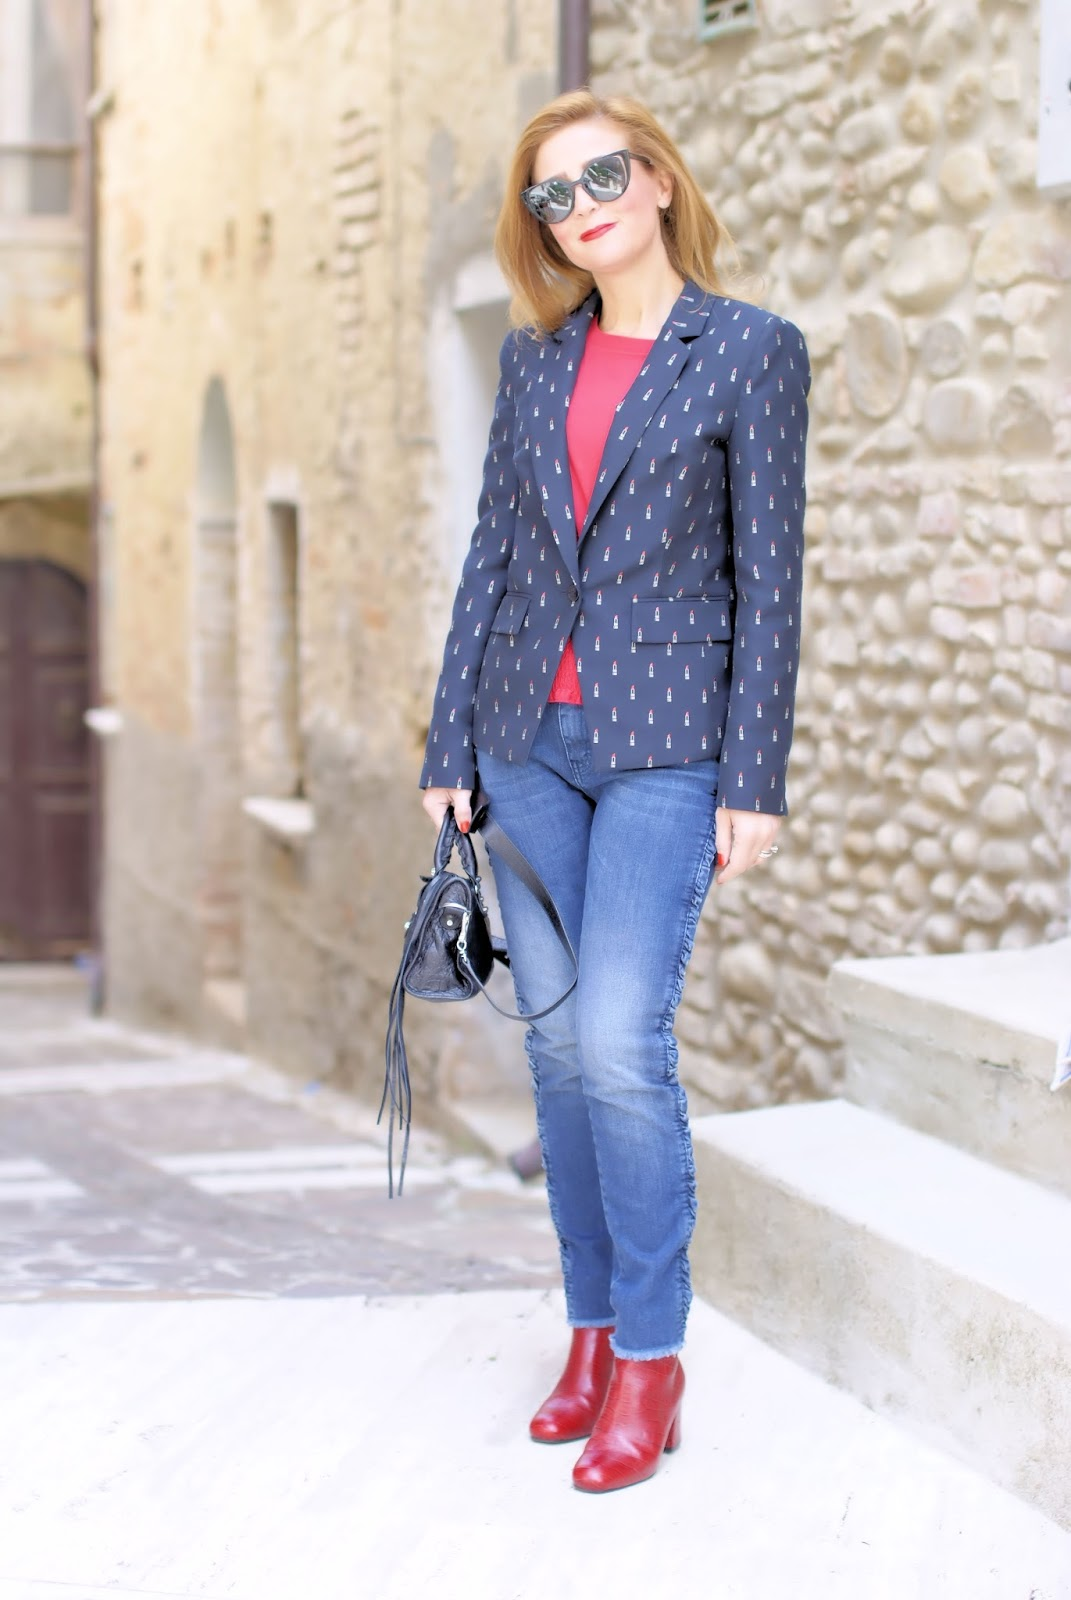 Must have jackets for Fall: lipstick print blazer, giacca con rossetti on Fashion and Cookies fashion blog, fashion blogger style